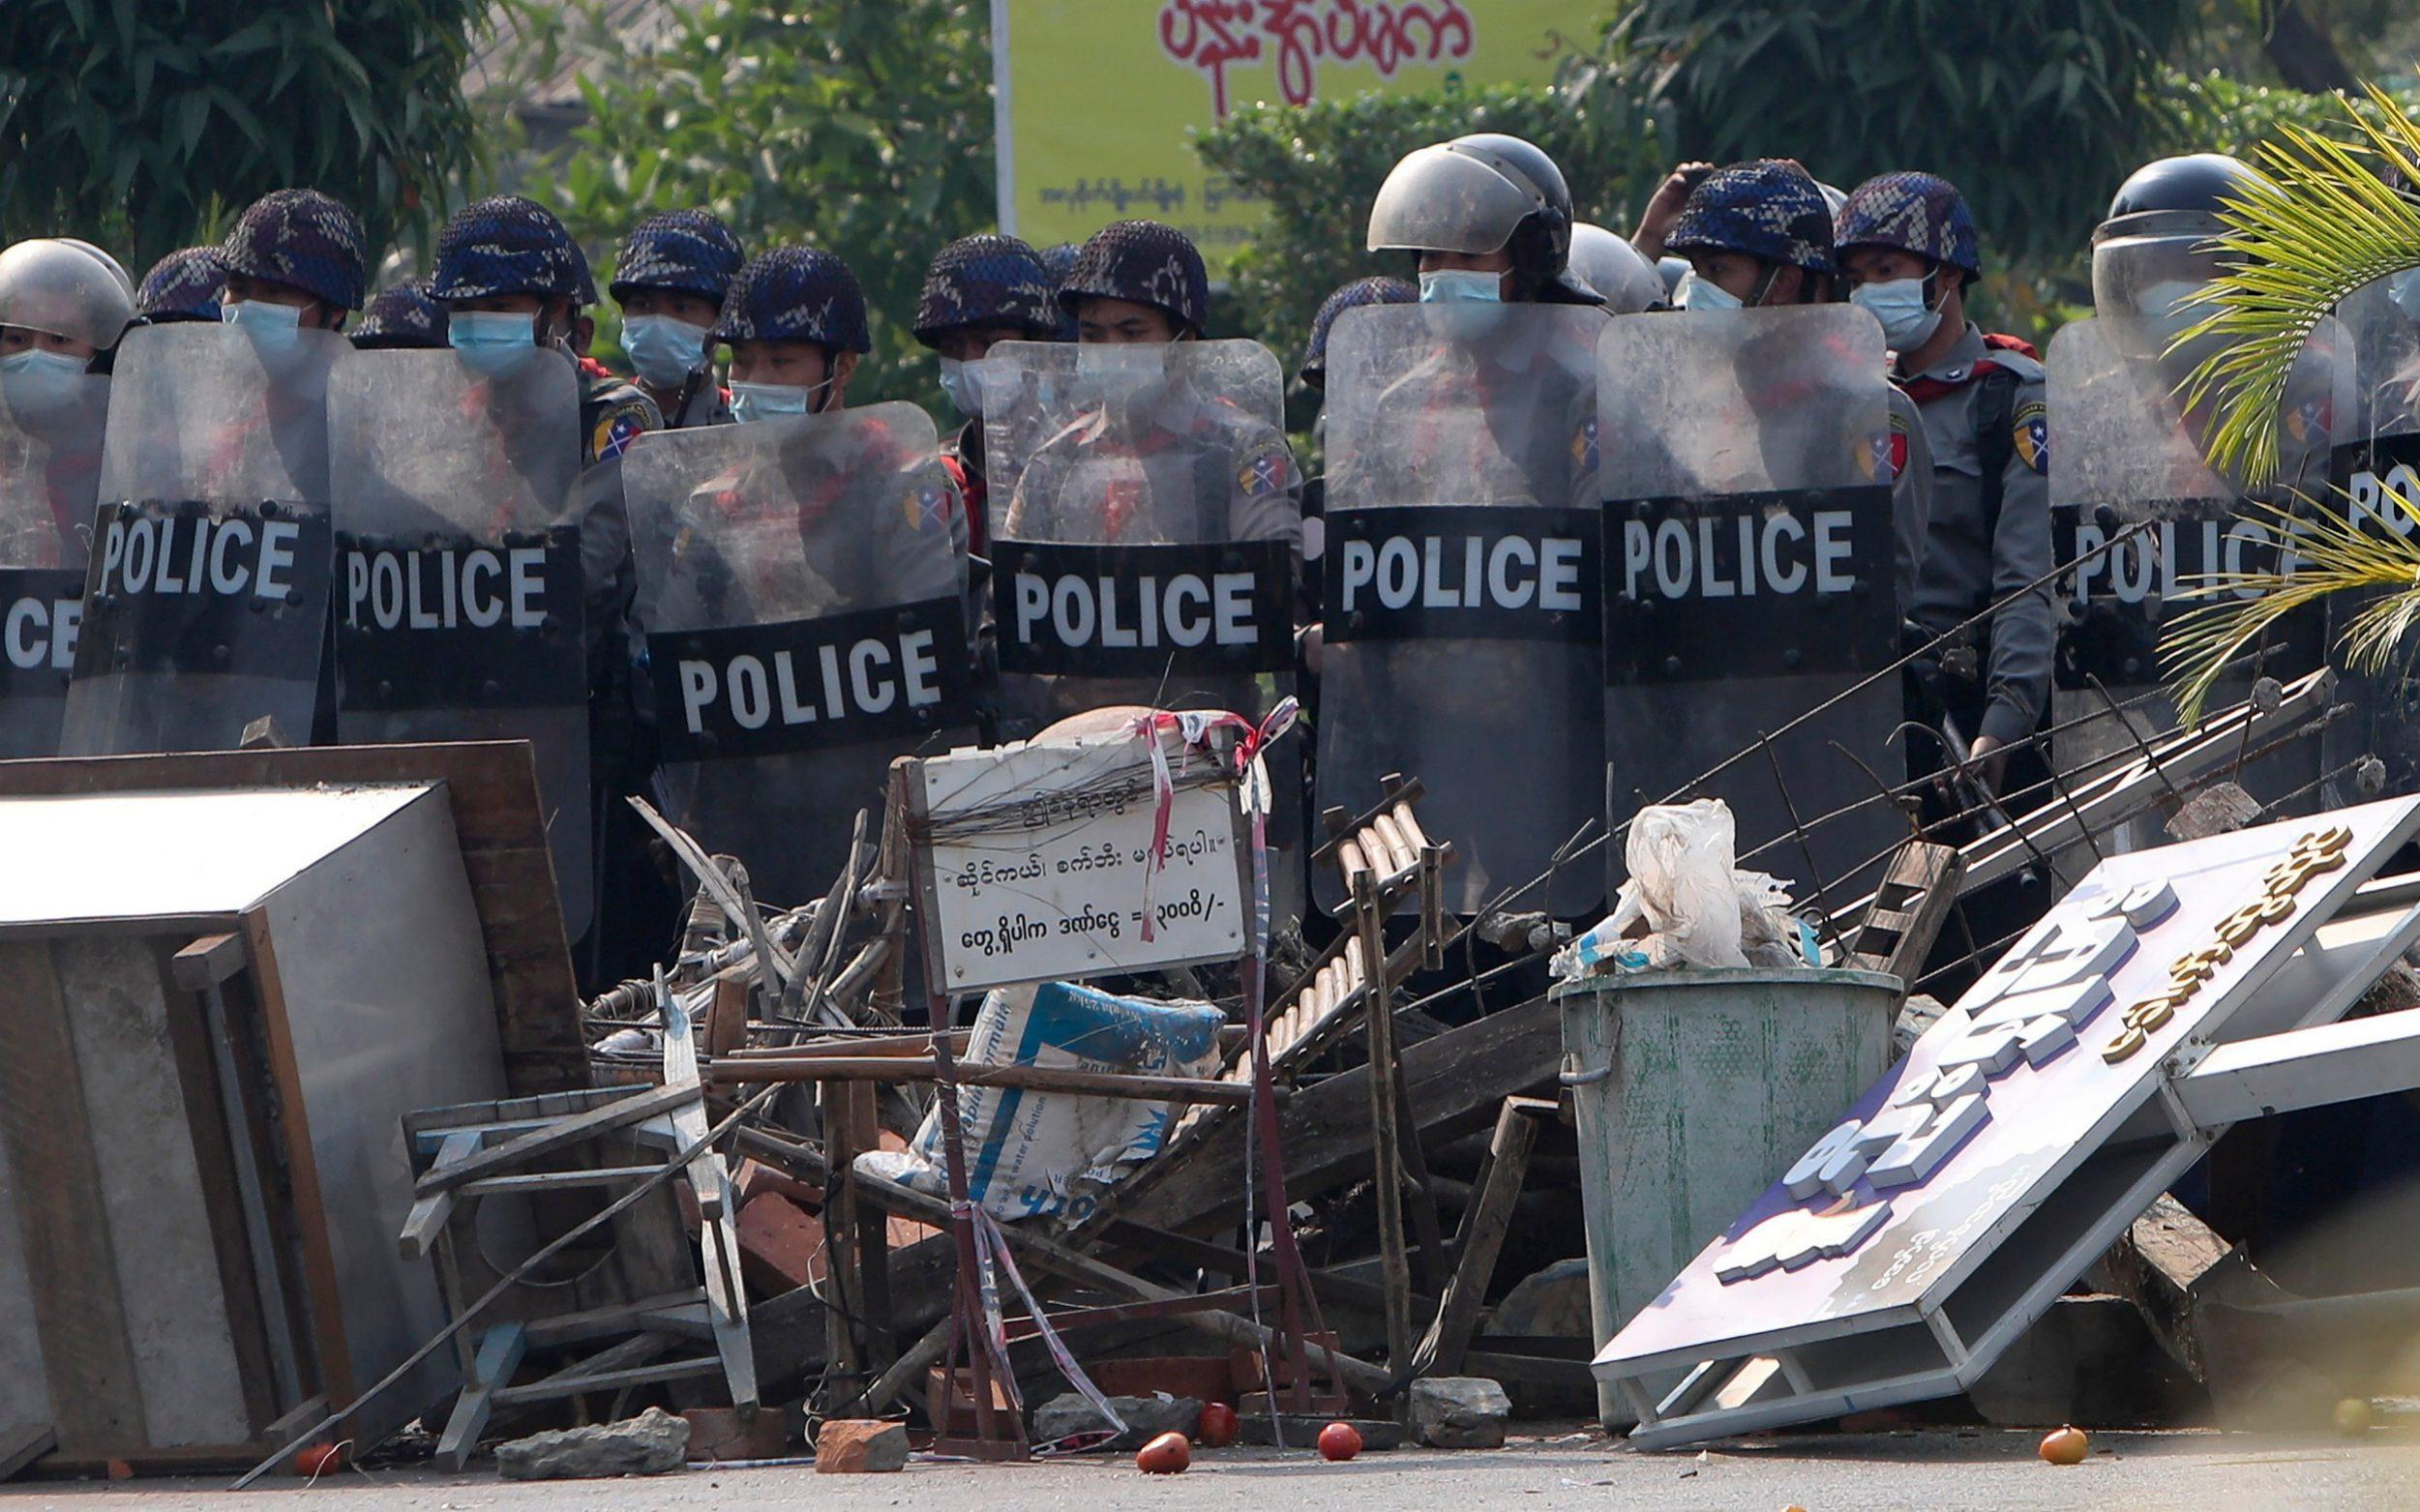 Myanmar policemen cross border into India after refusing to carry out orders set by new military junta